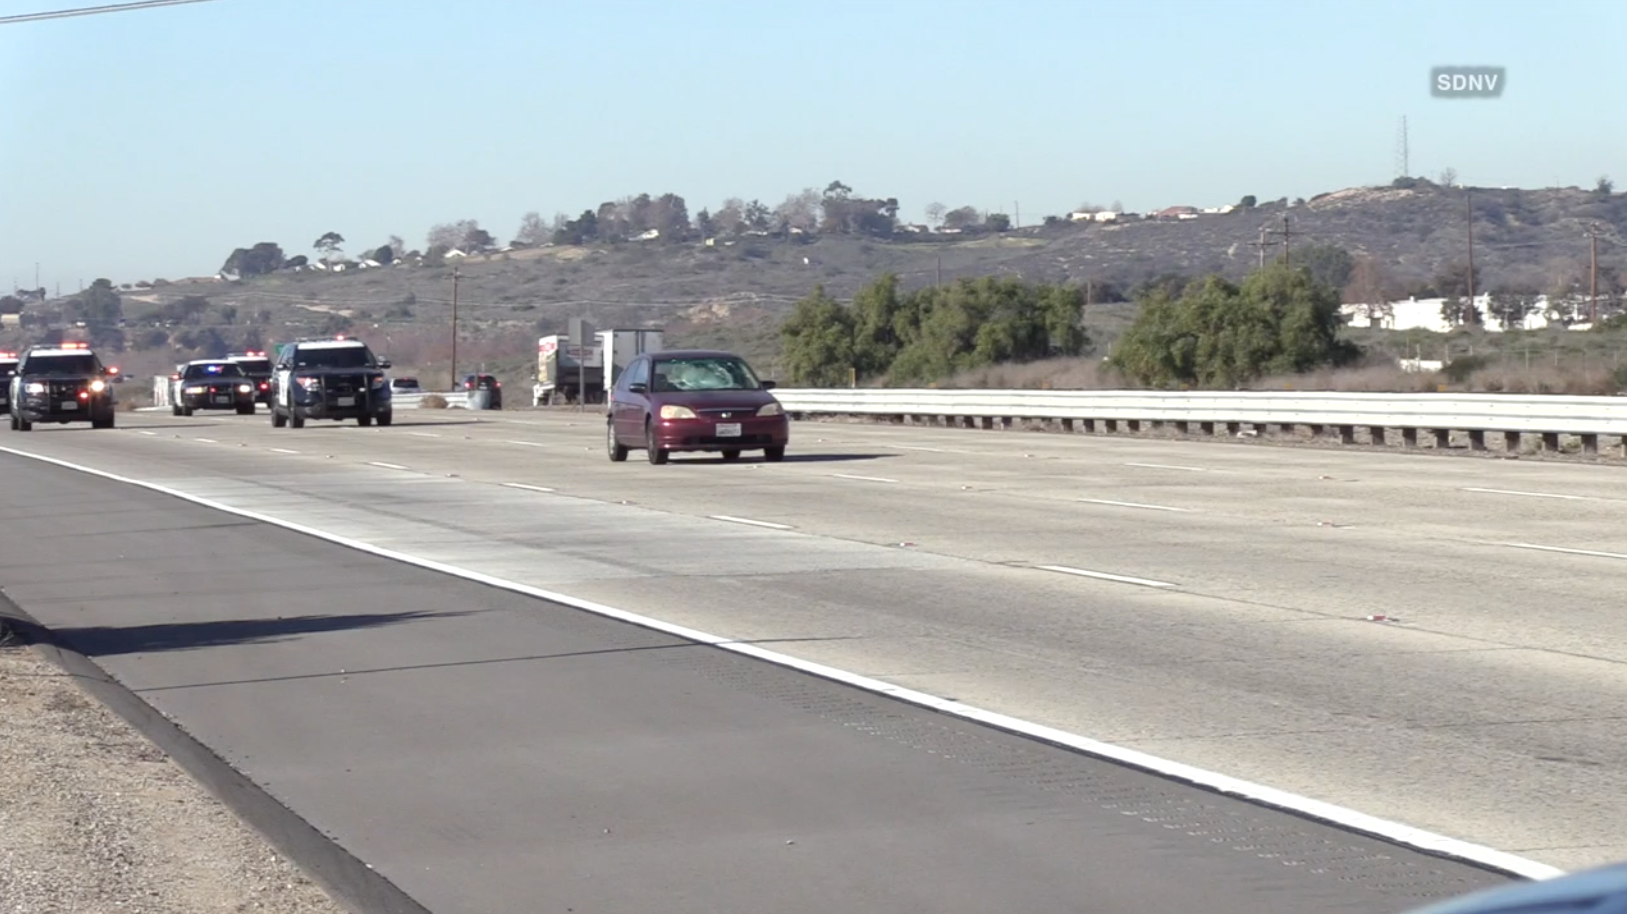 Chase Suspect Apprehended Near Camp Pendleton All I 5 South Lanes Reopened After Closure